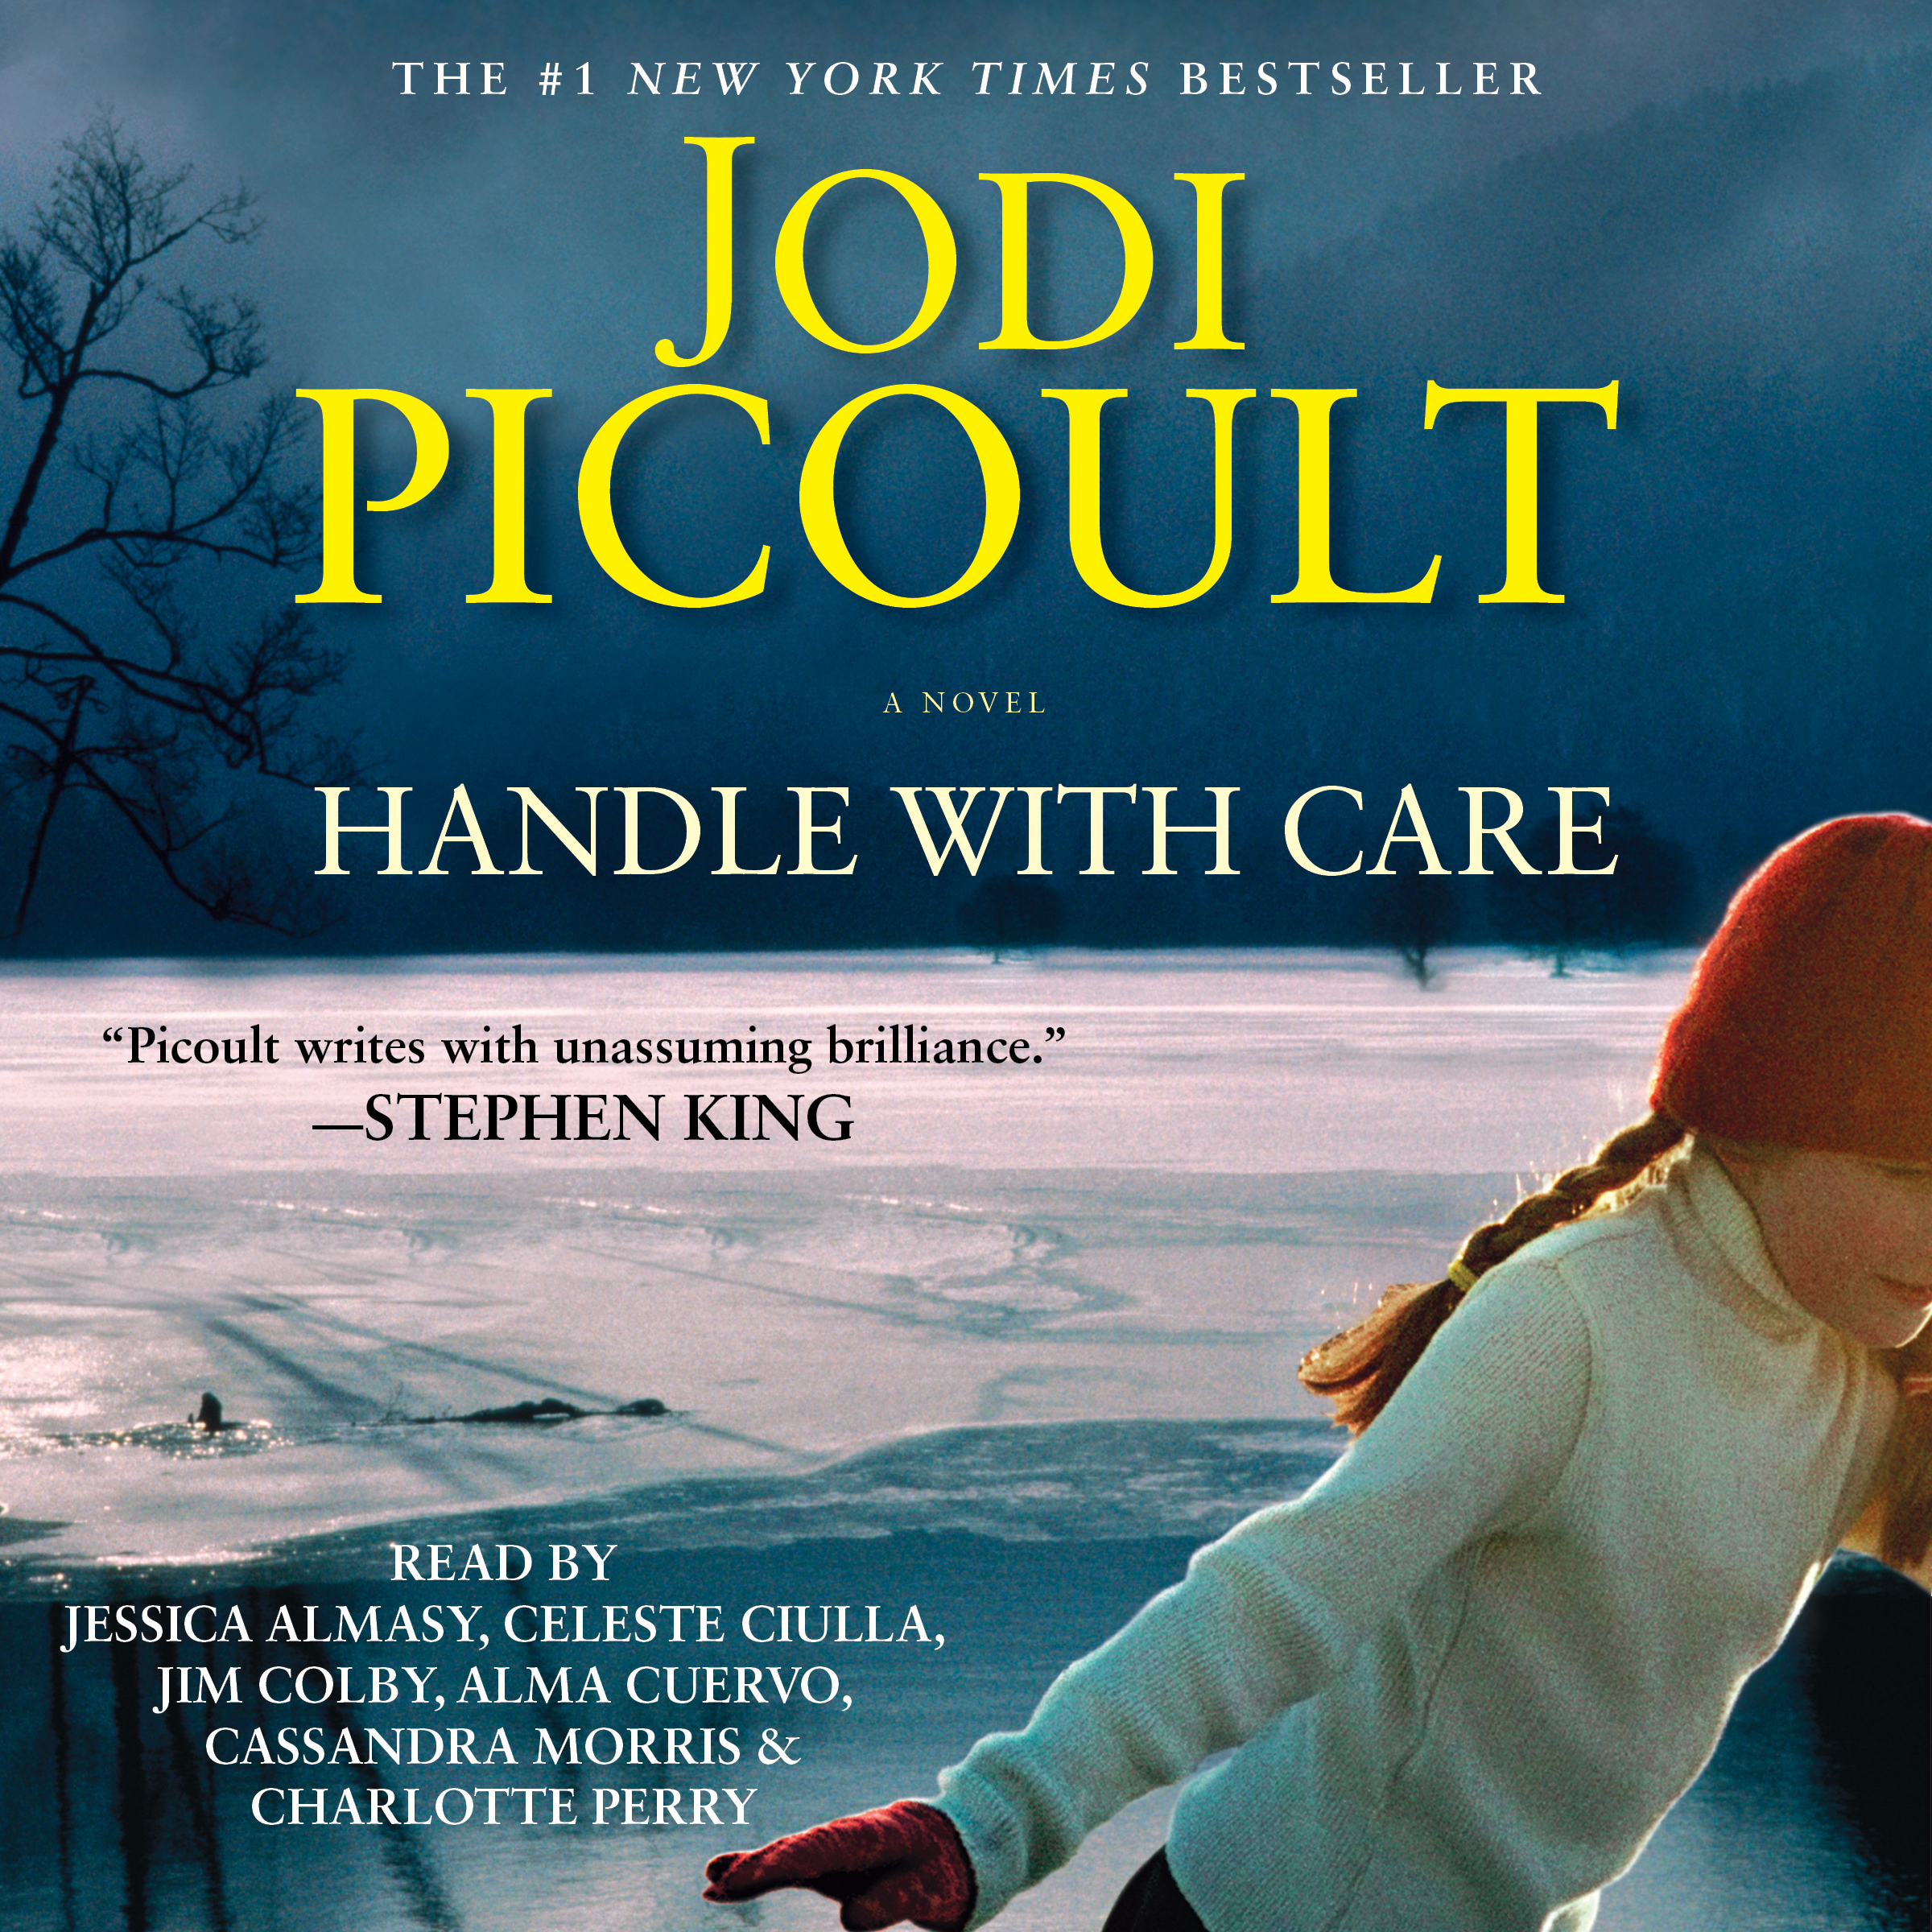 Handle with Care: A Novel Audiobook, by Jodi Picoult